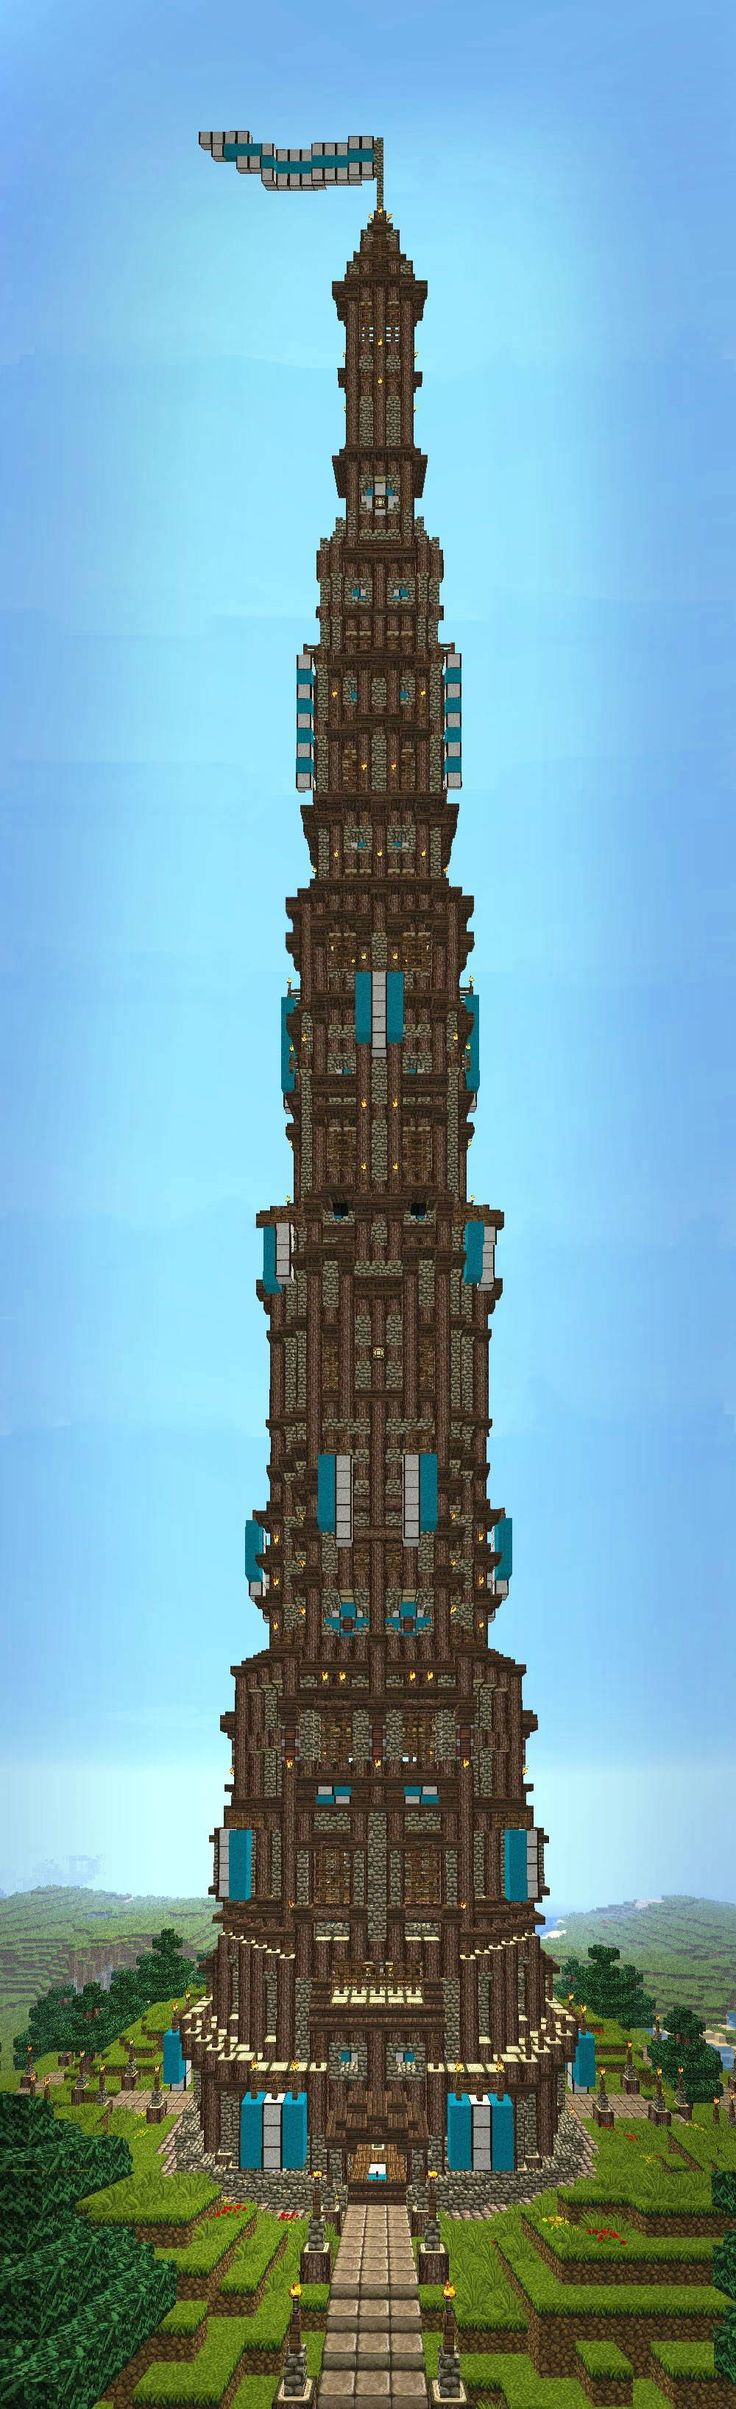 looks like a tower in minecraft                                                                                                                                                                                 More